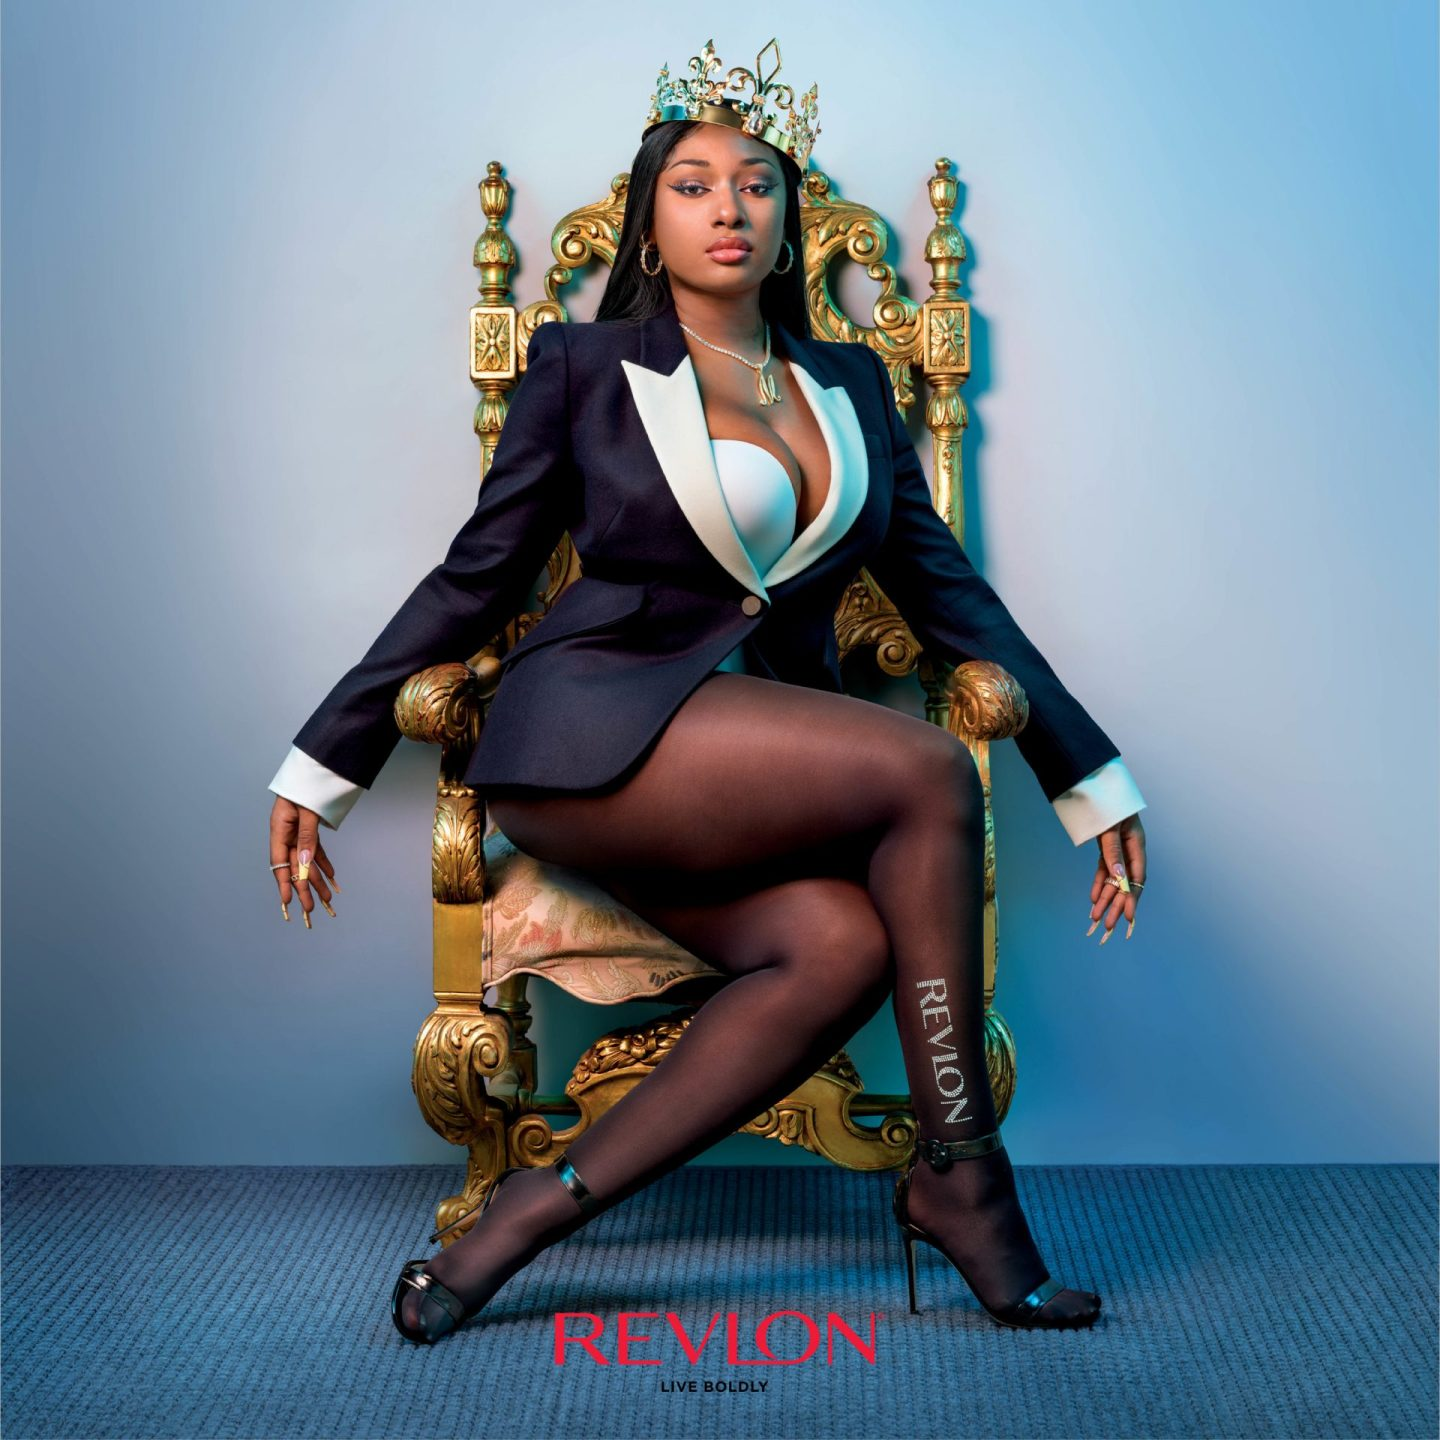 Revlon Launches New Fragrance with Megan Thee Stallion